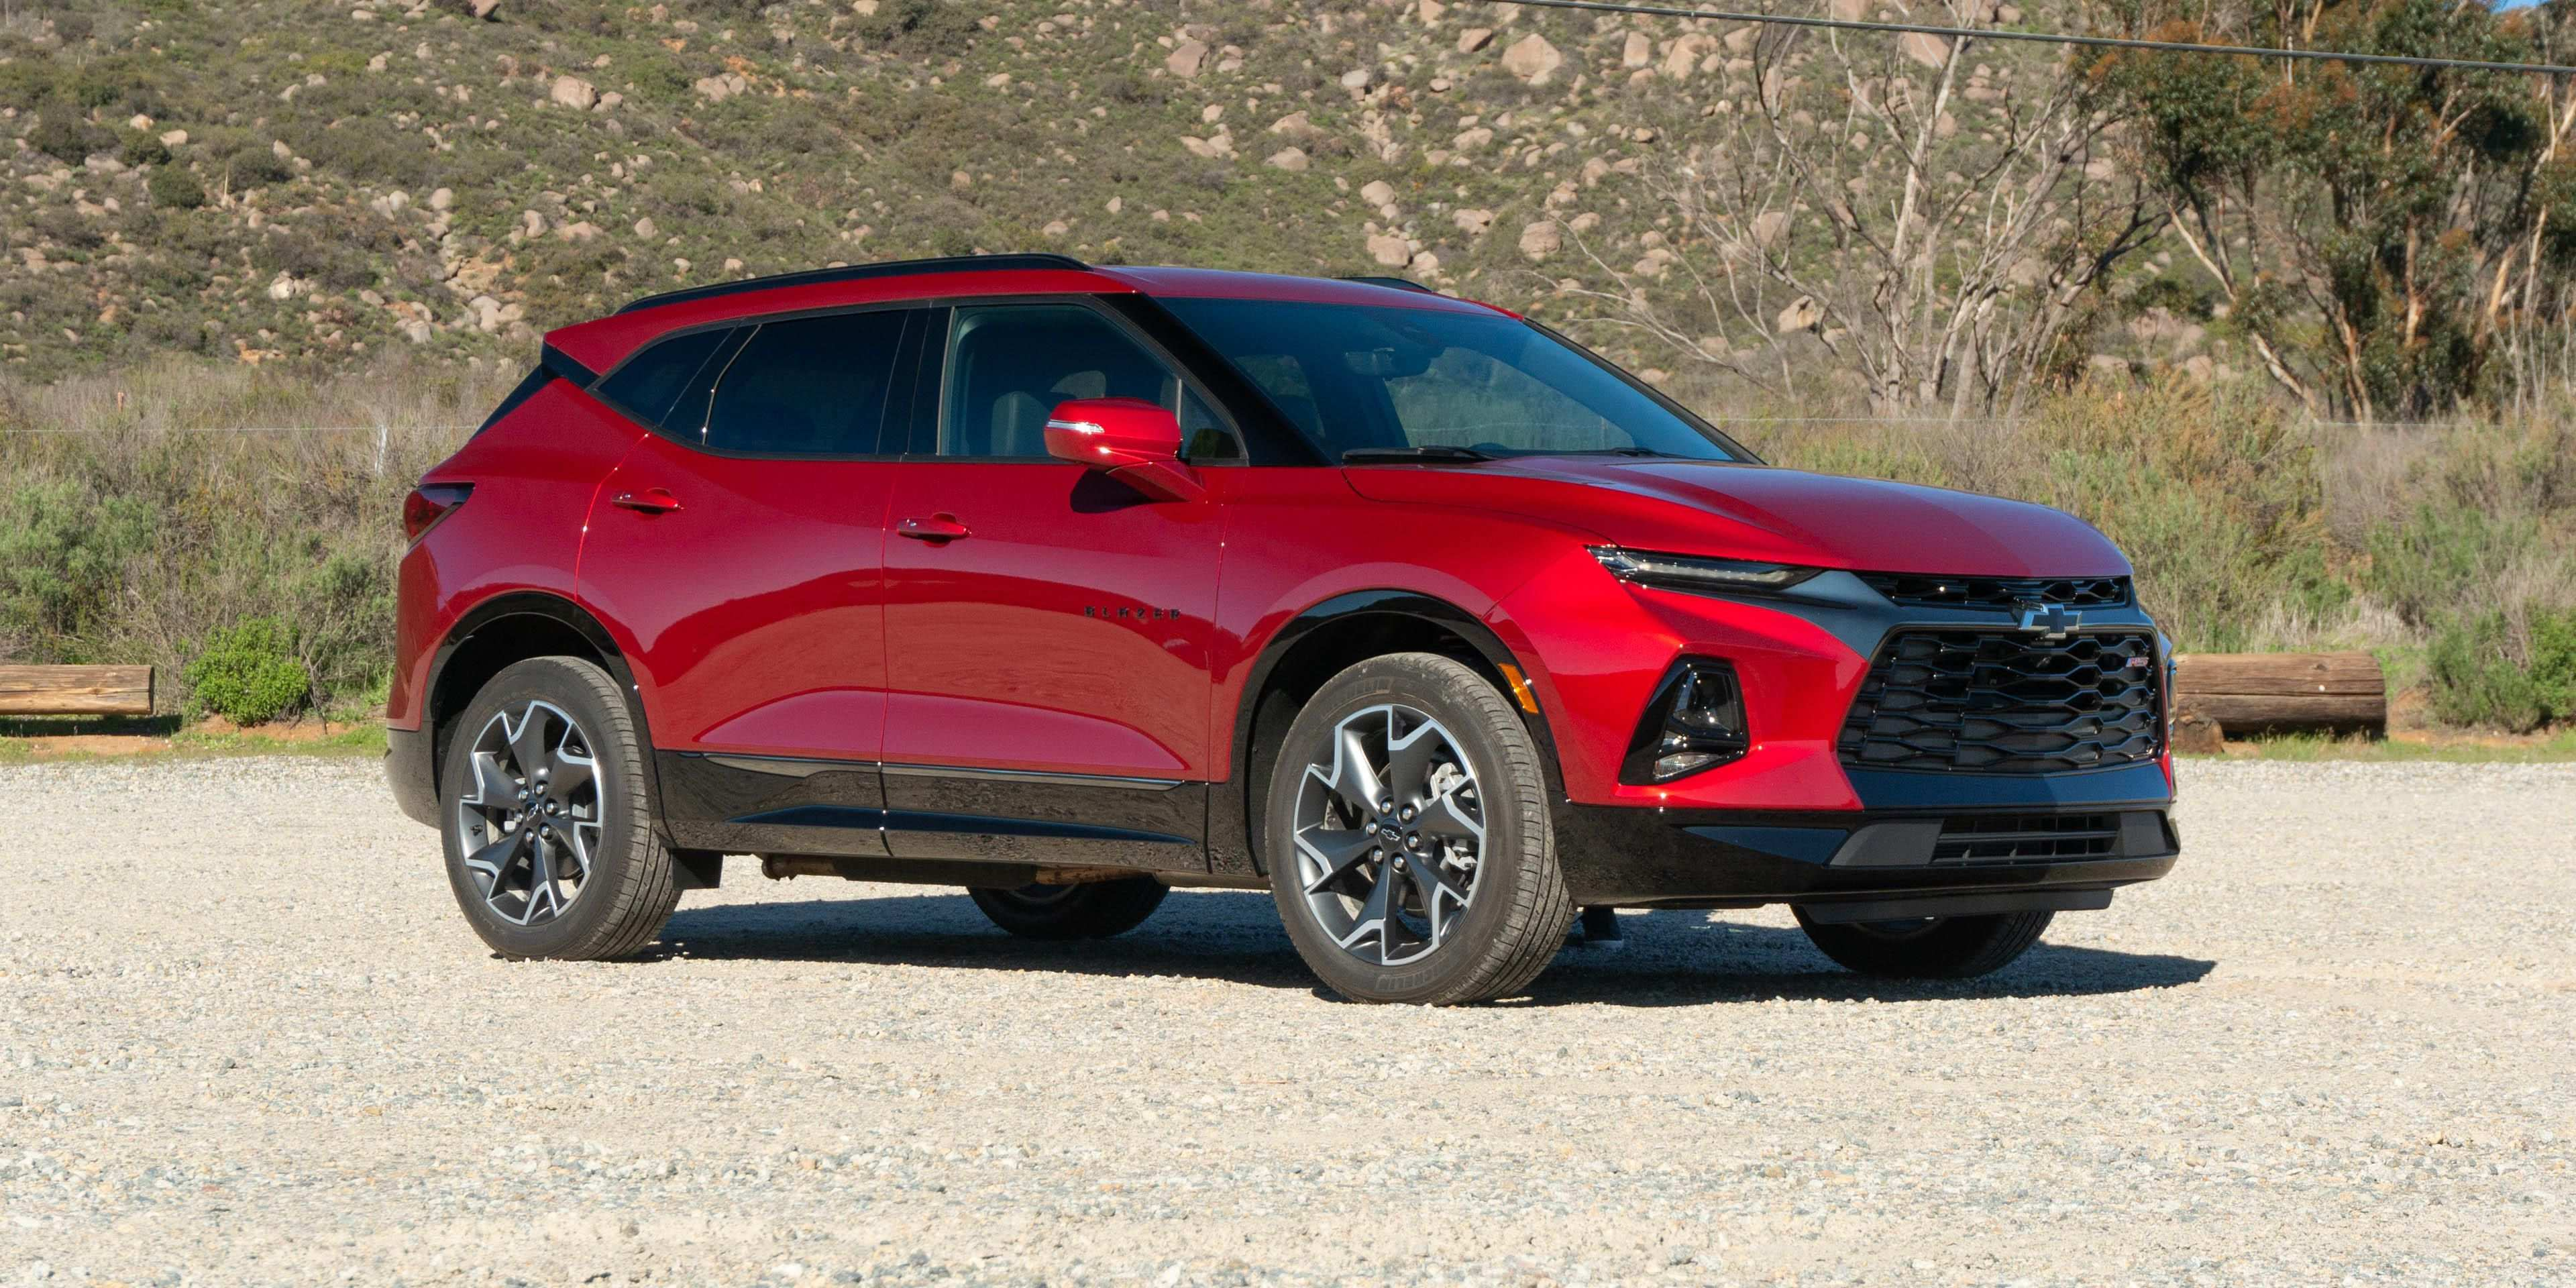 72 New 2019 The Chevy Blazer Research New